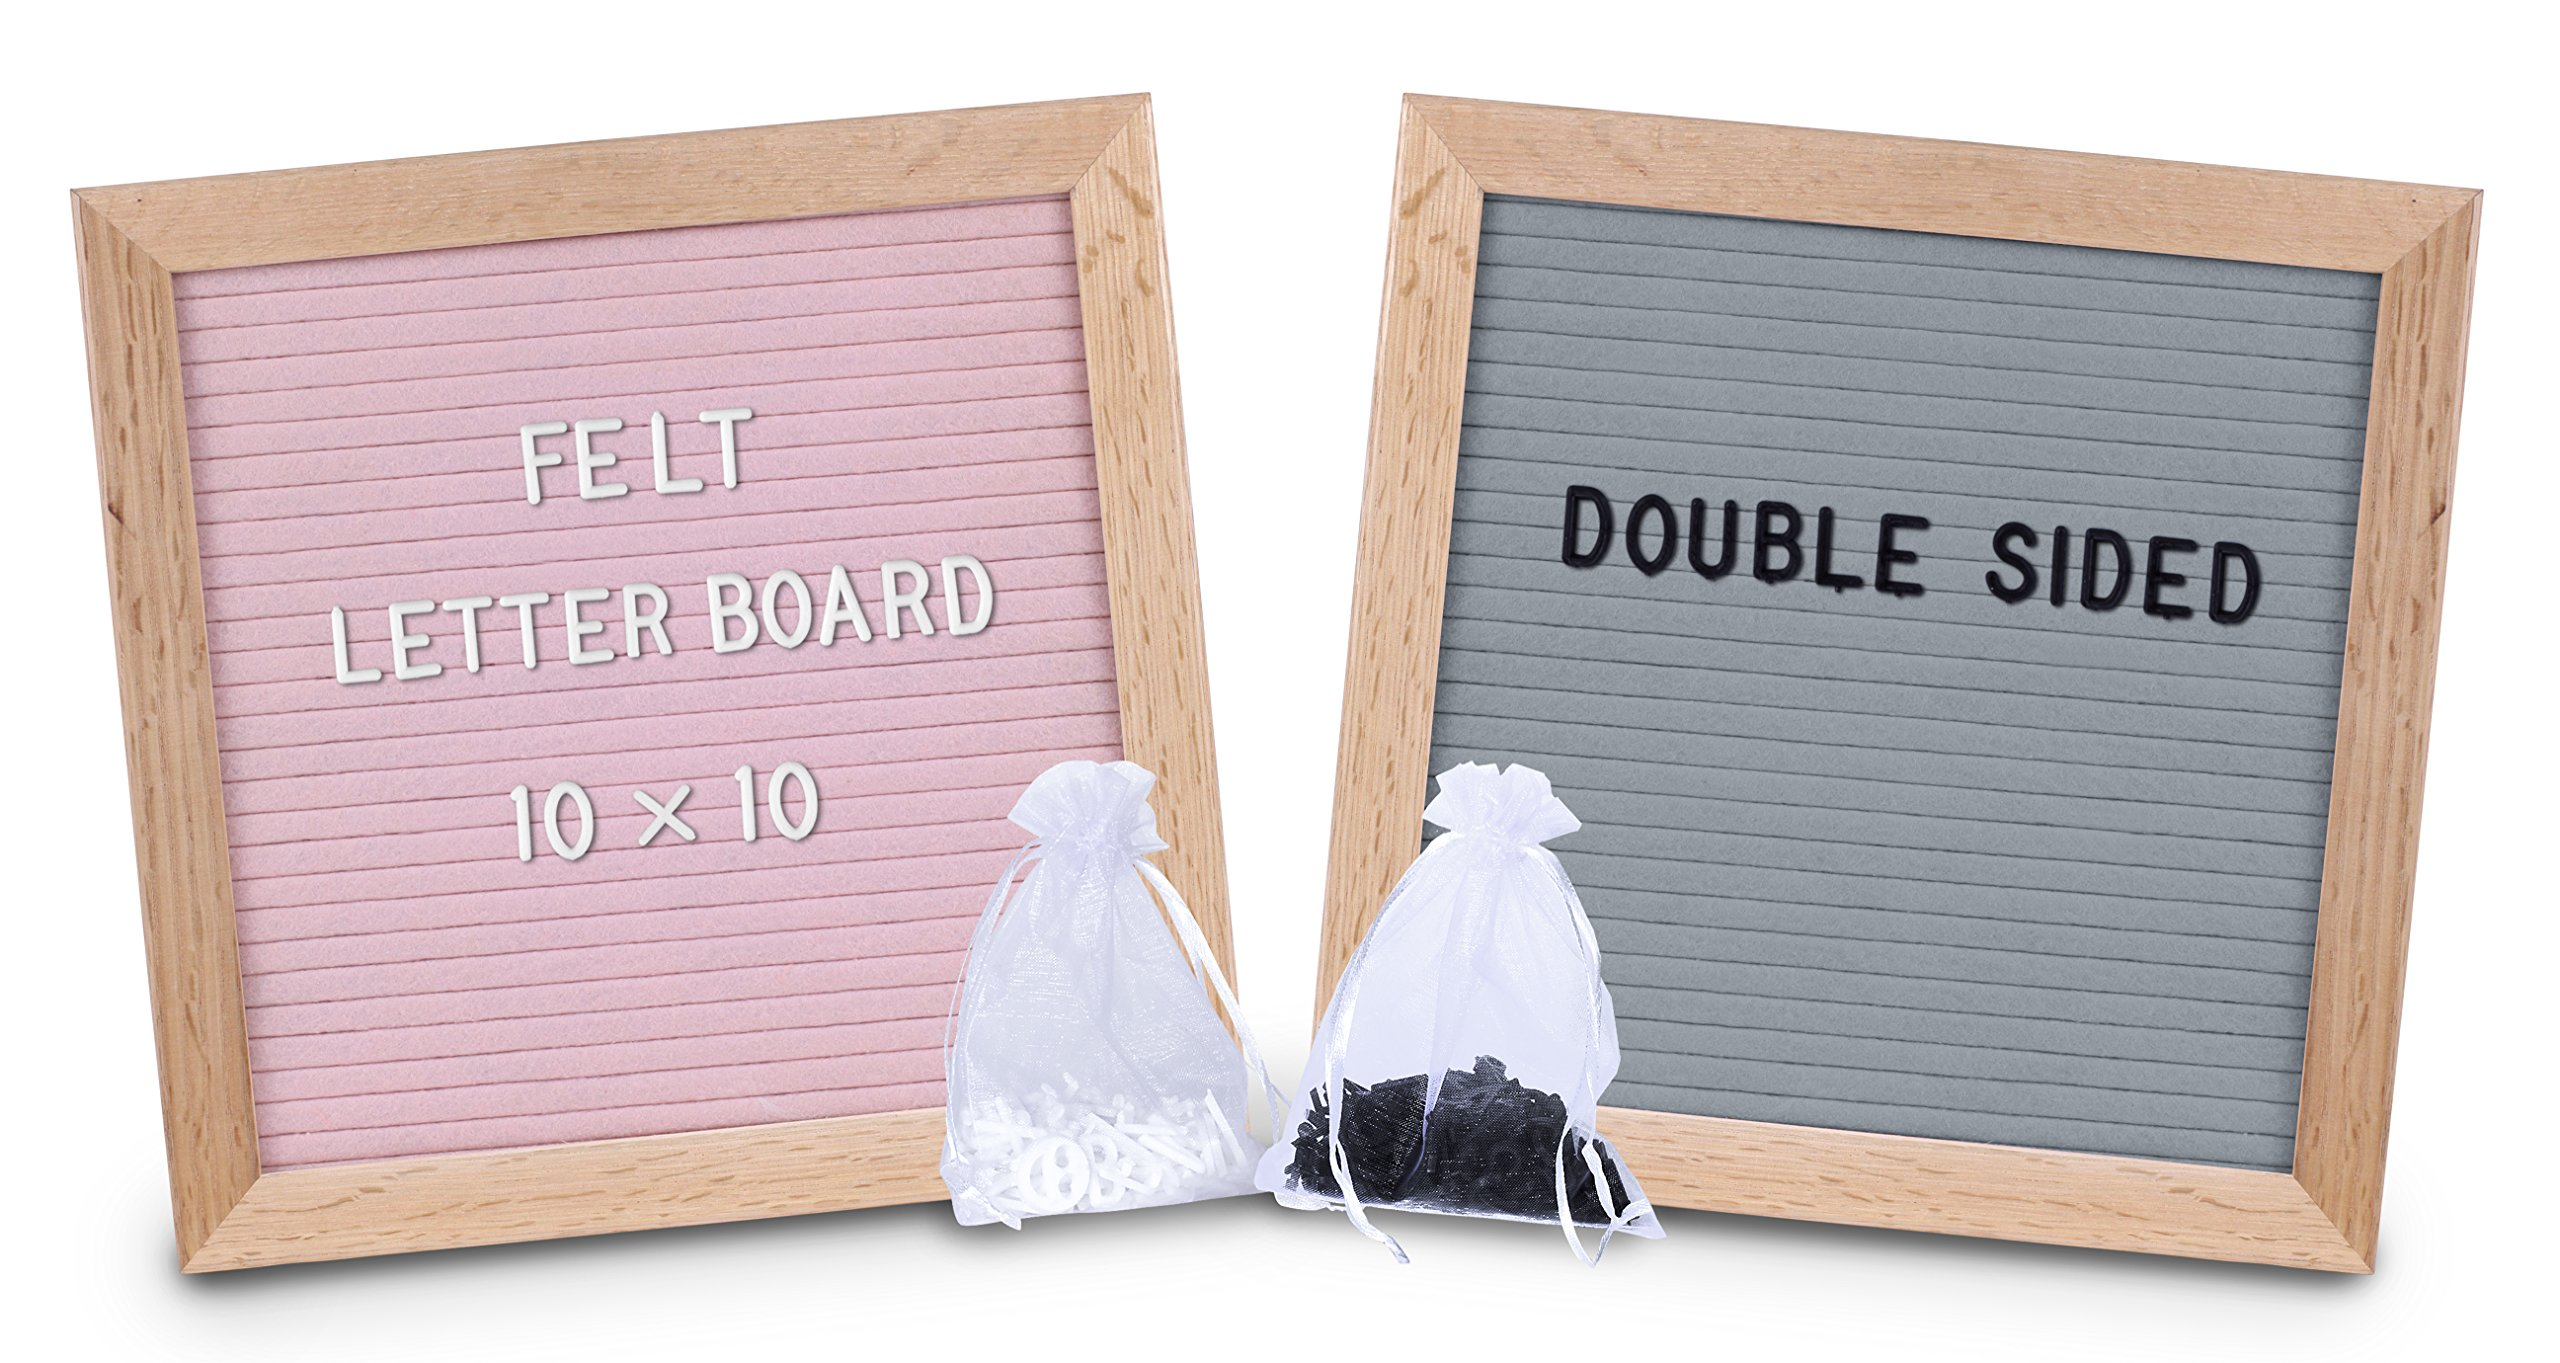 Felt Letter Board, Double sided -10x10, Pink and Grey - block stand, oak wood frame, 2 BONUS sheer bags, 680 white and black letters, special characters, emojis, symbols - for your home, office, shops